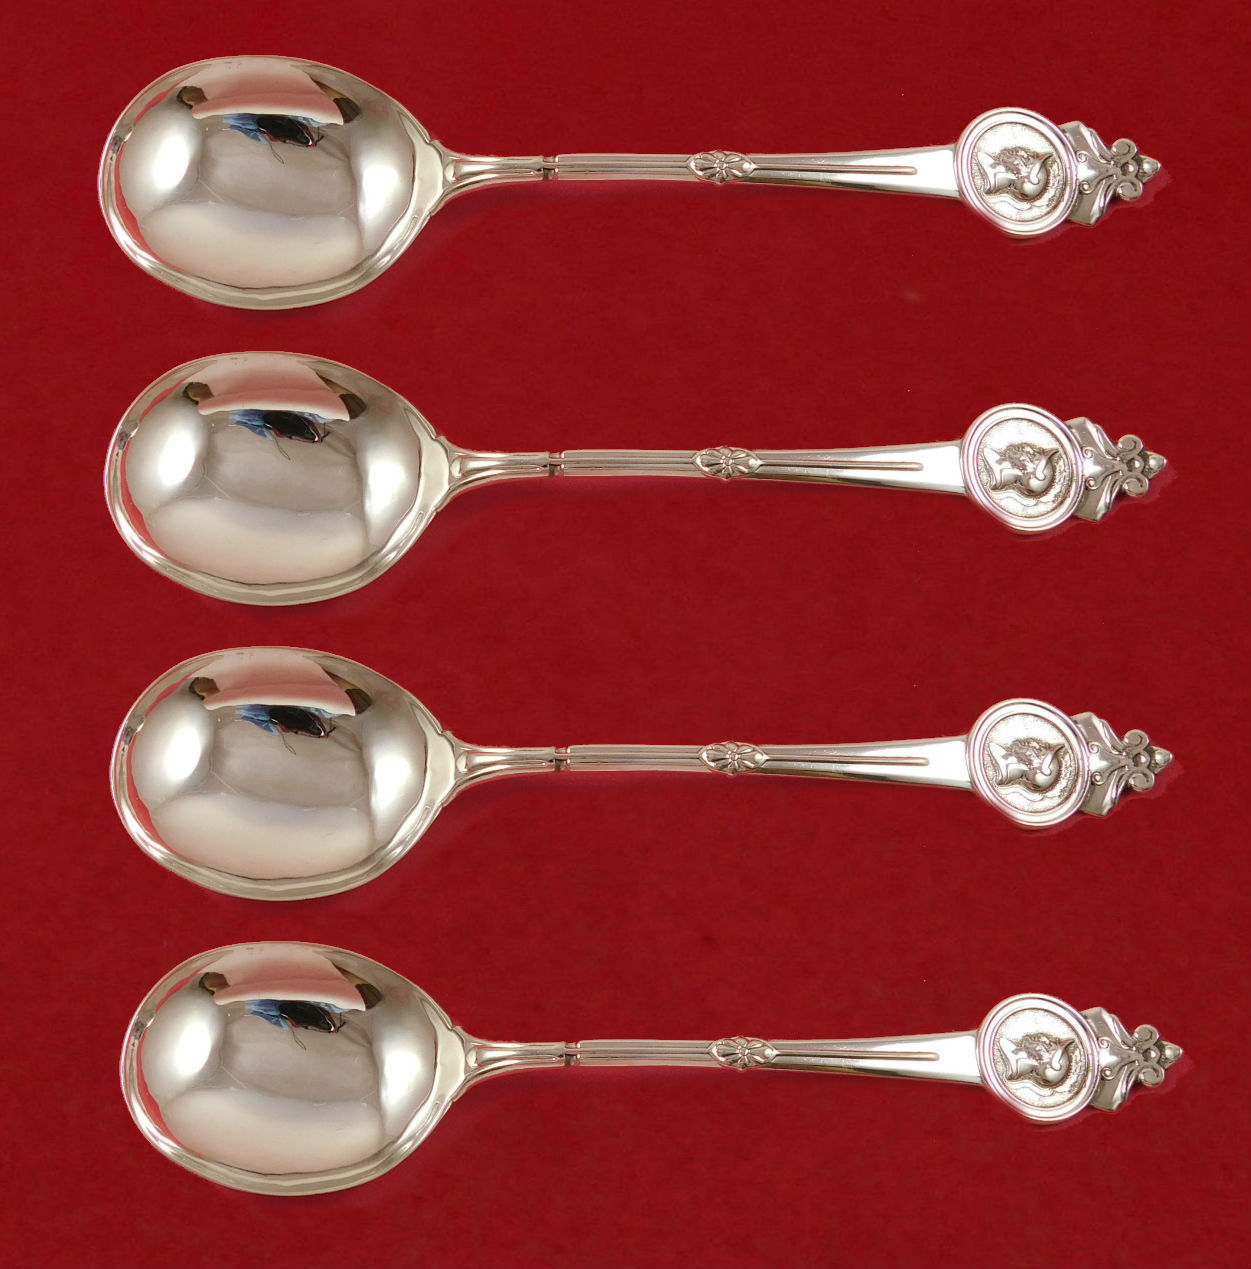 Primary image for Medallion by Gorham Sterling Silver Gumbo Spoon 4-piece Set 8""